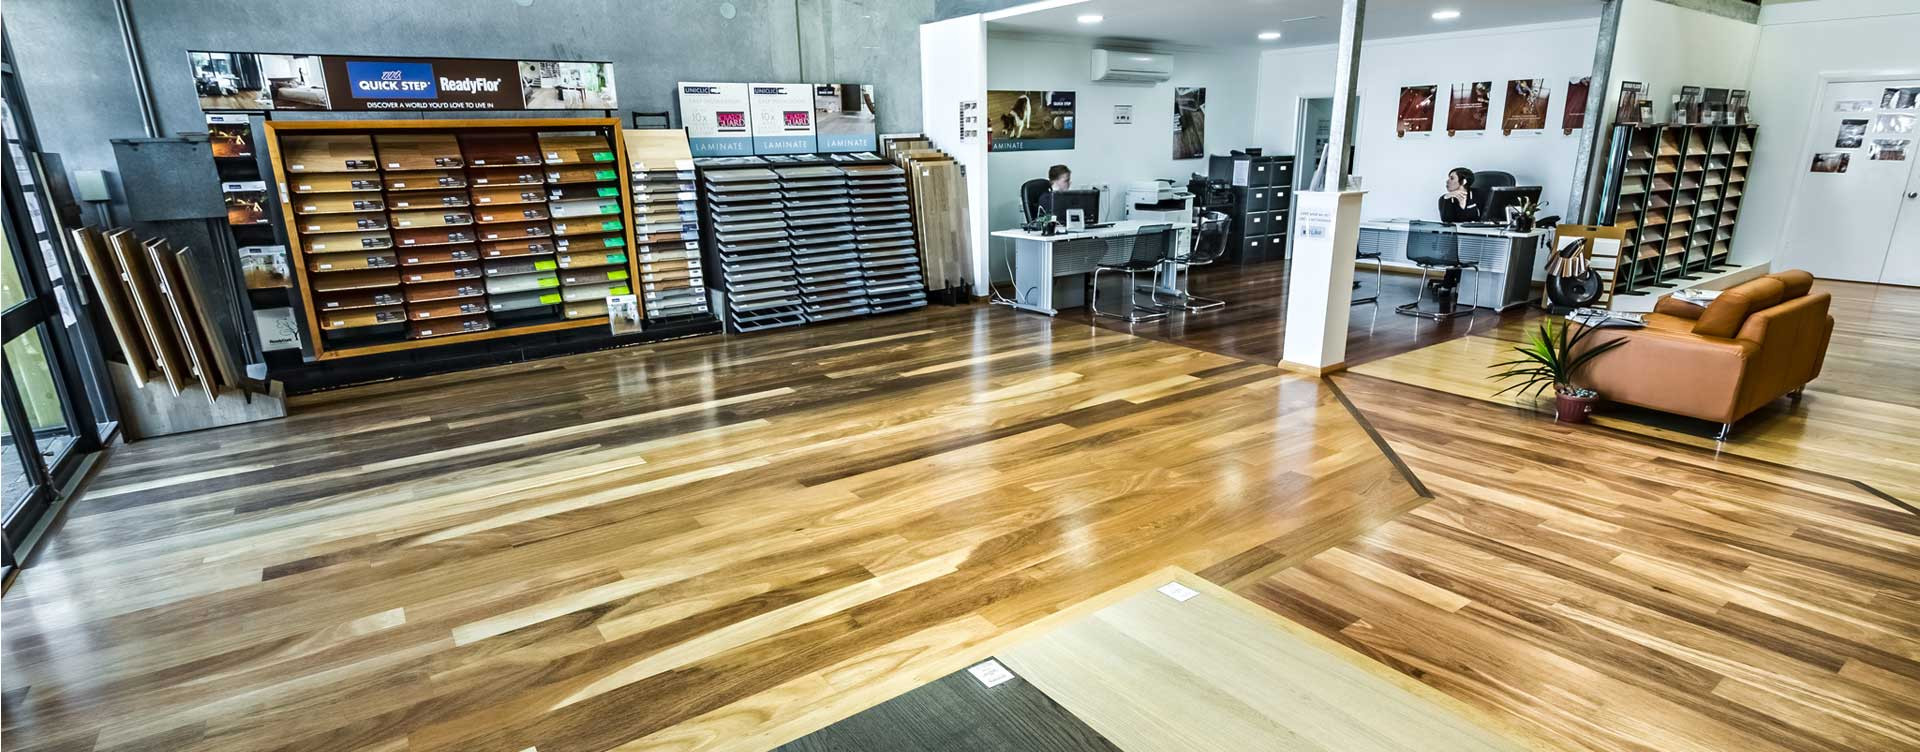 15 Amazing How to Clean Engineered Hardwood Floors Bona 2021 free download how to clean engineered hardwood floors bona of timber flooring perth coastal flooring wa quality wooden regarding thats why they call us the home of fine wood floors